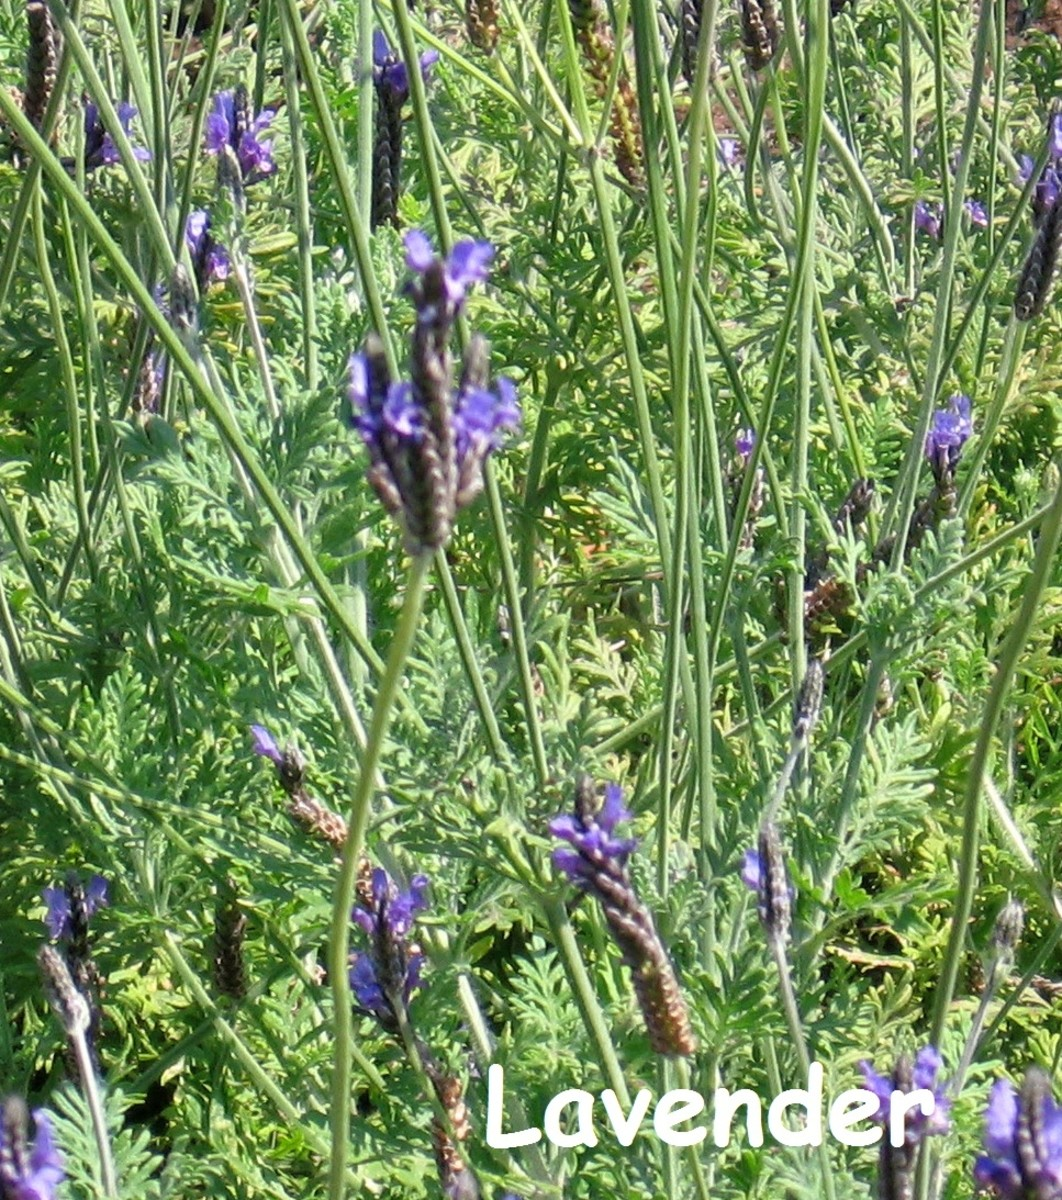 Lavender, easy to grow and so versatile—it can be used in a lot of different natural herbal remedies.